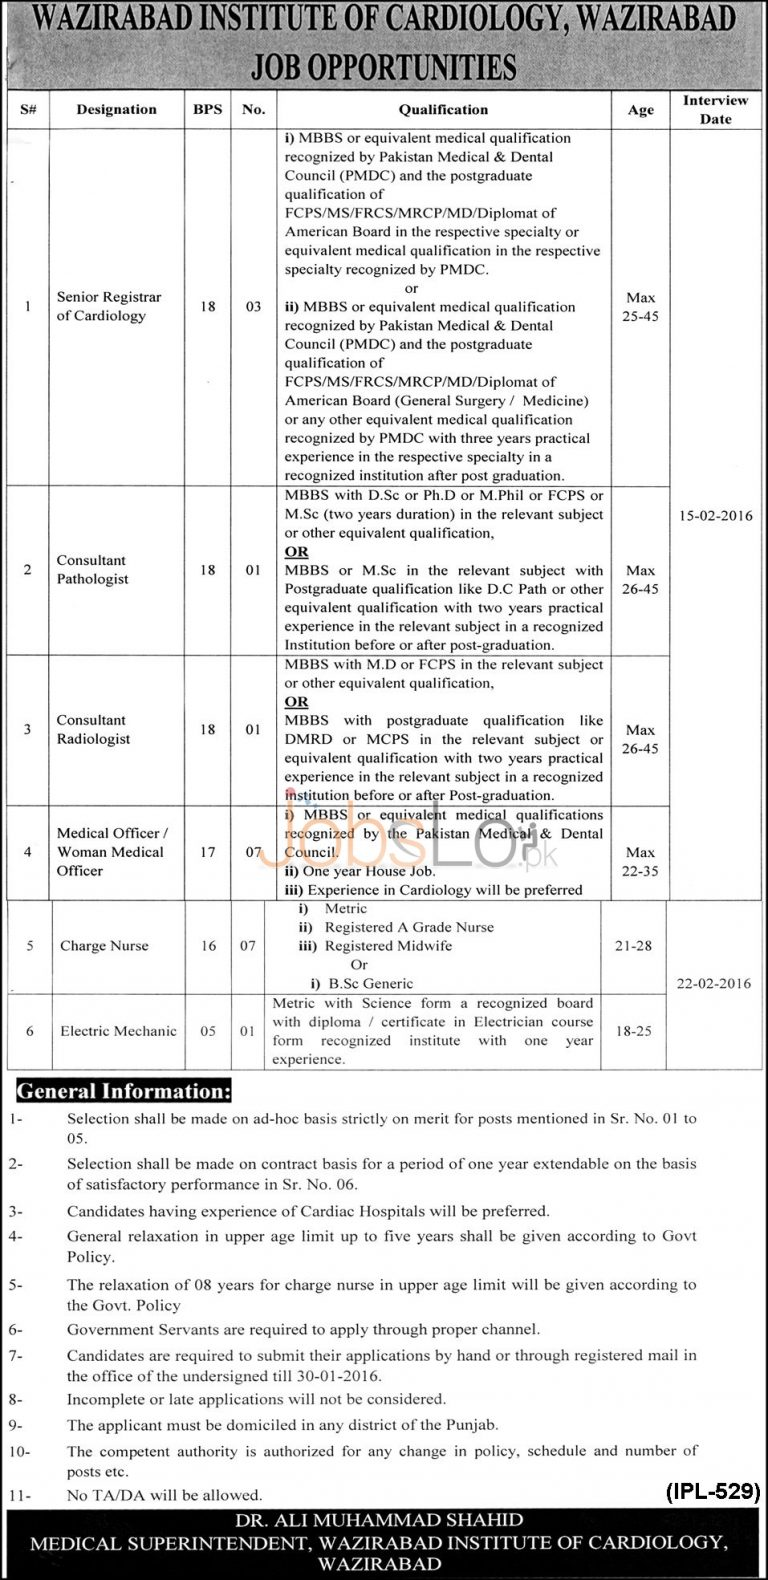 Wazirabad Institute of Cardiology Jobs for Senior Registrar of Cardiology, Consultant Pathologist and Medical Officer